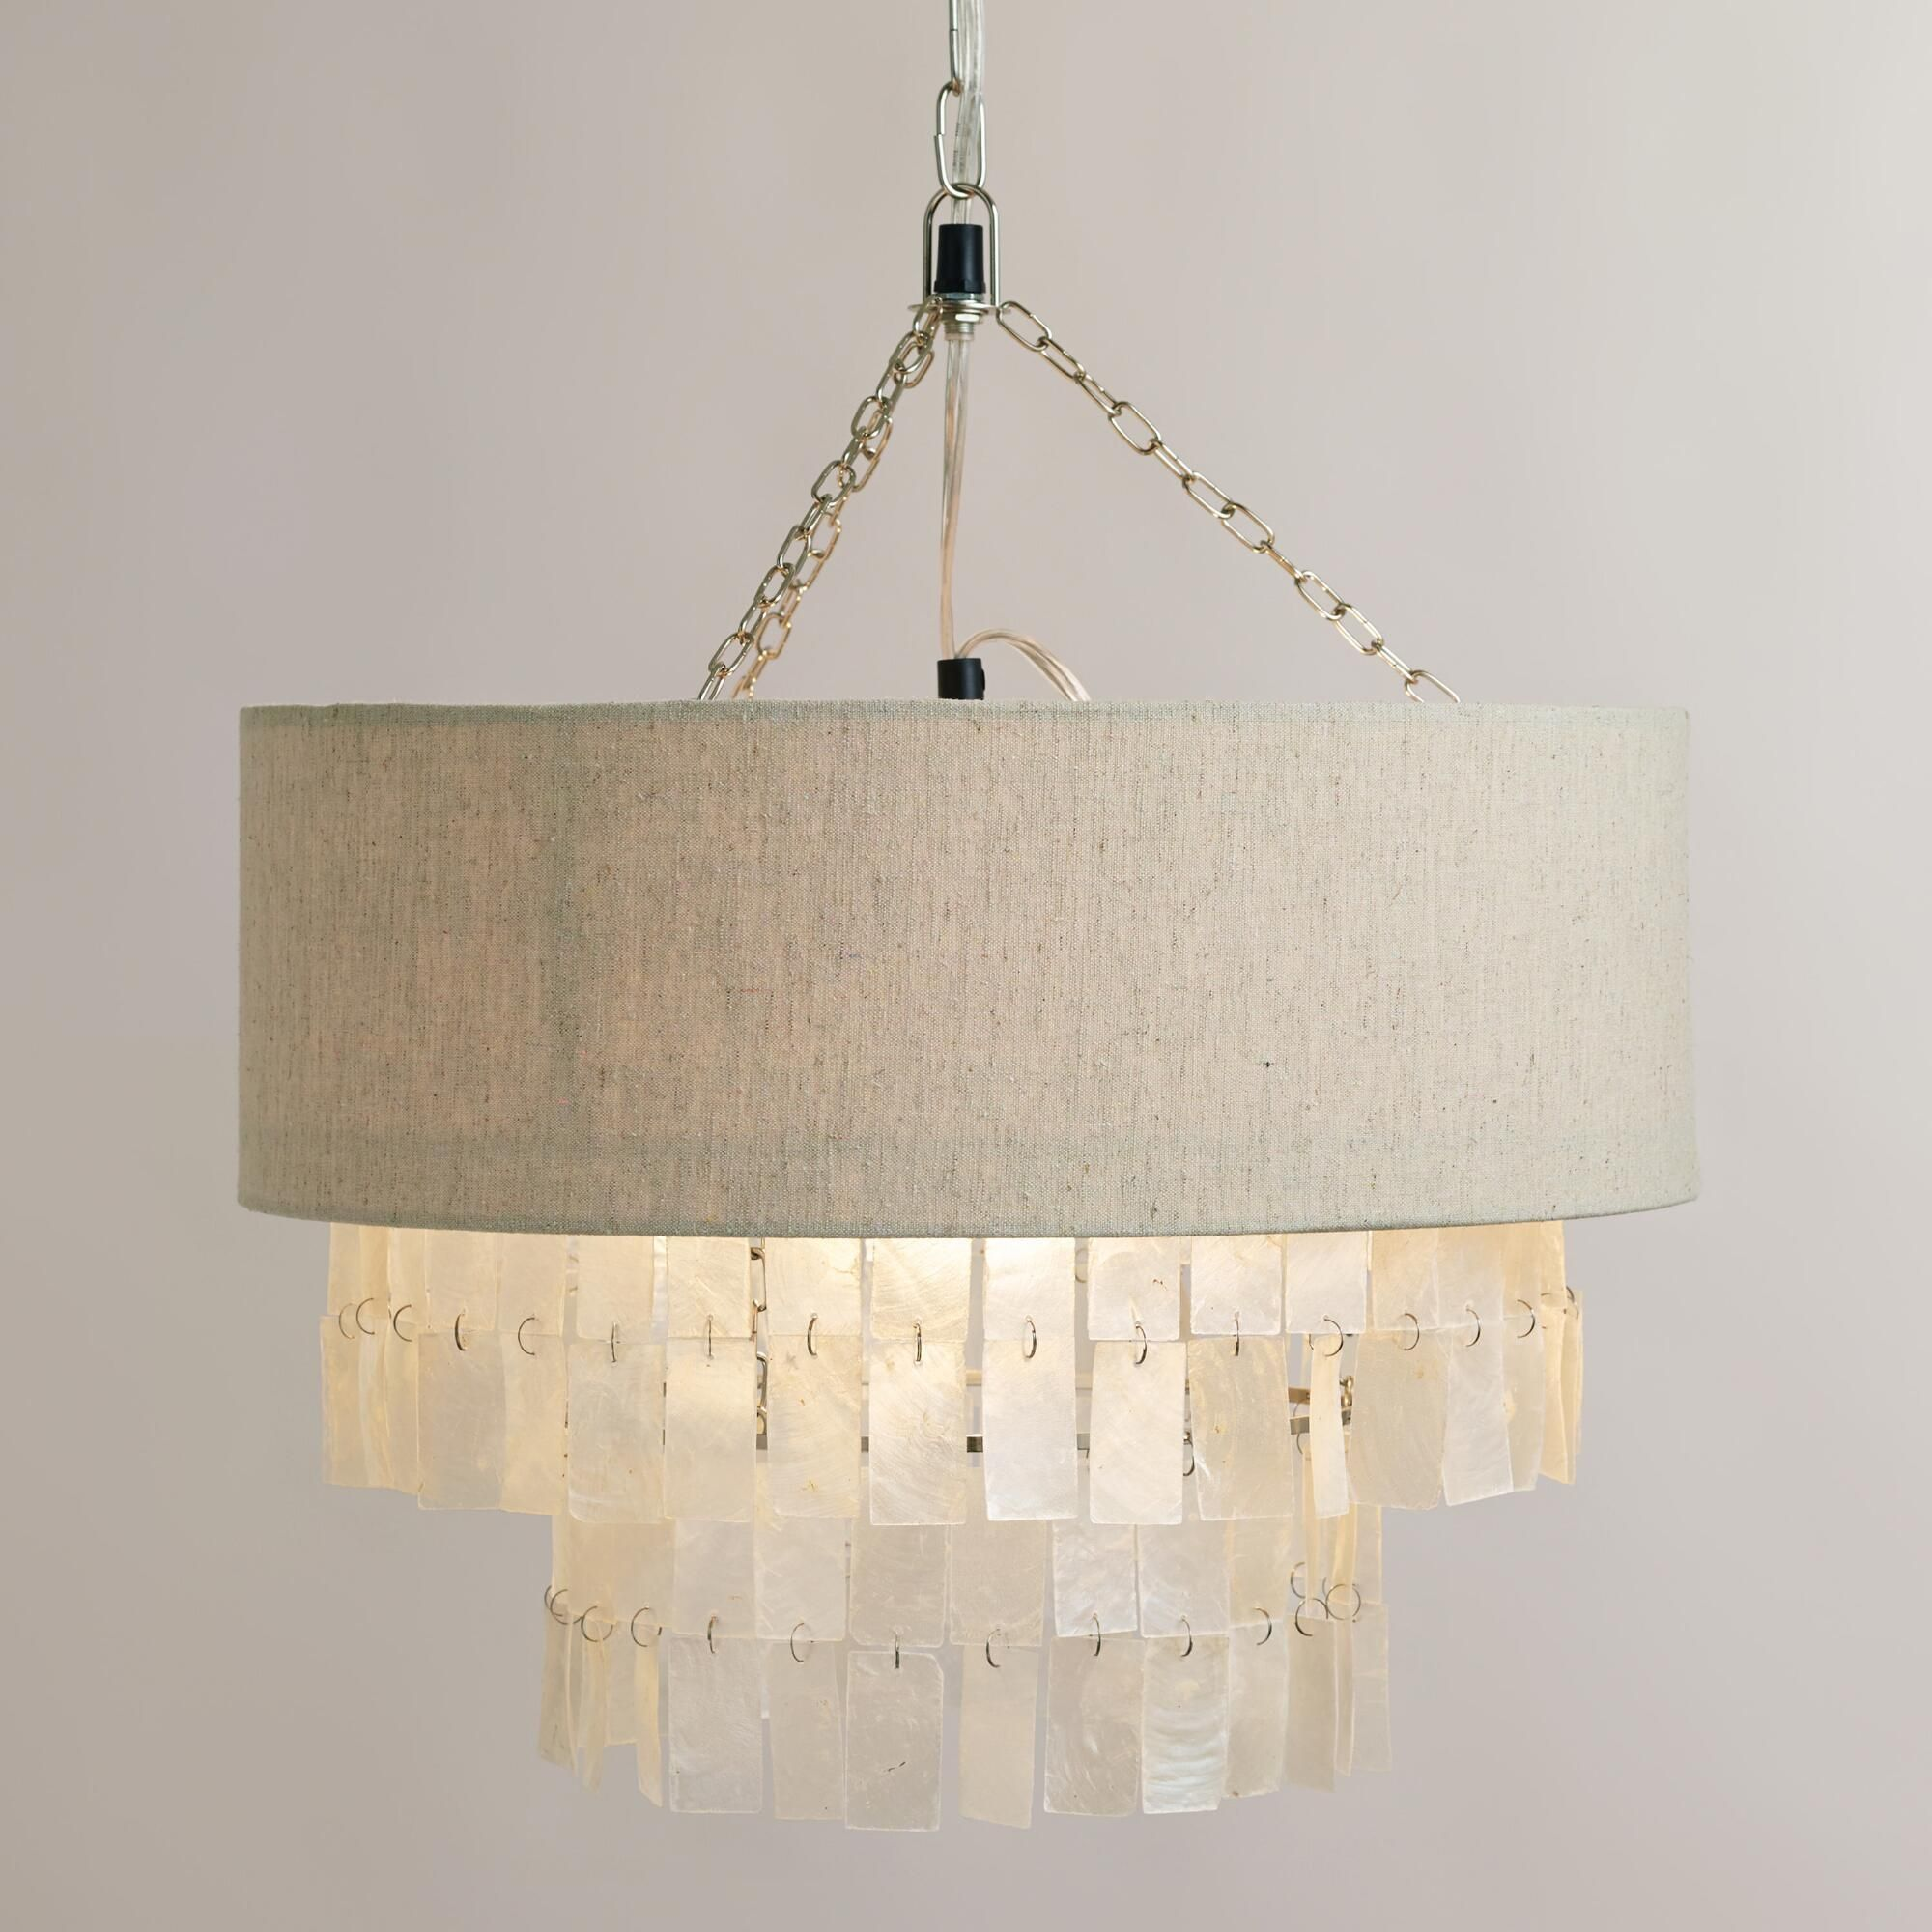 White Capiz Linen Pendant Lamp World Market Wish It Used More Than One Bulb